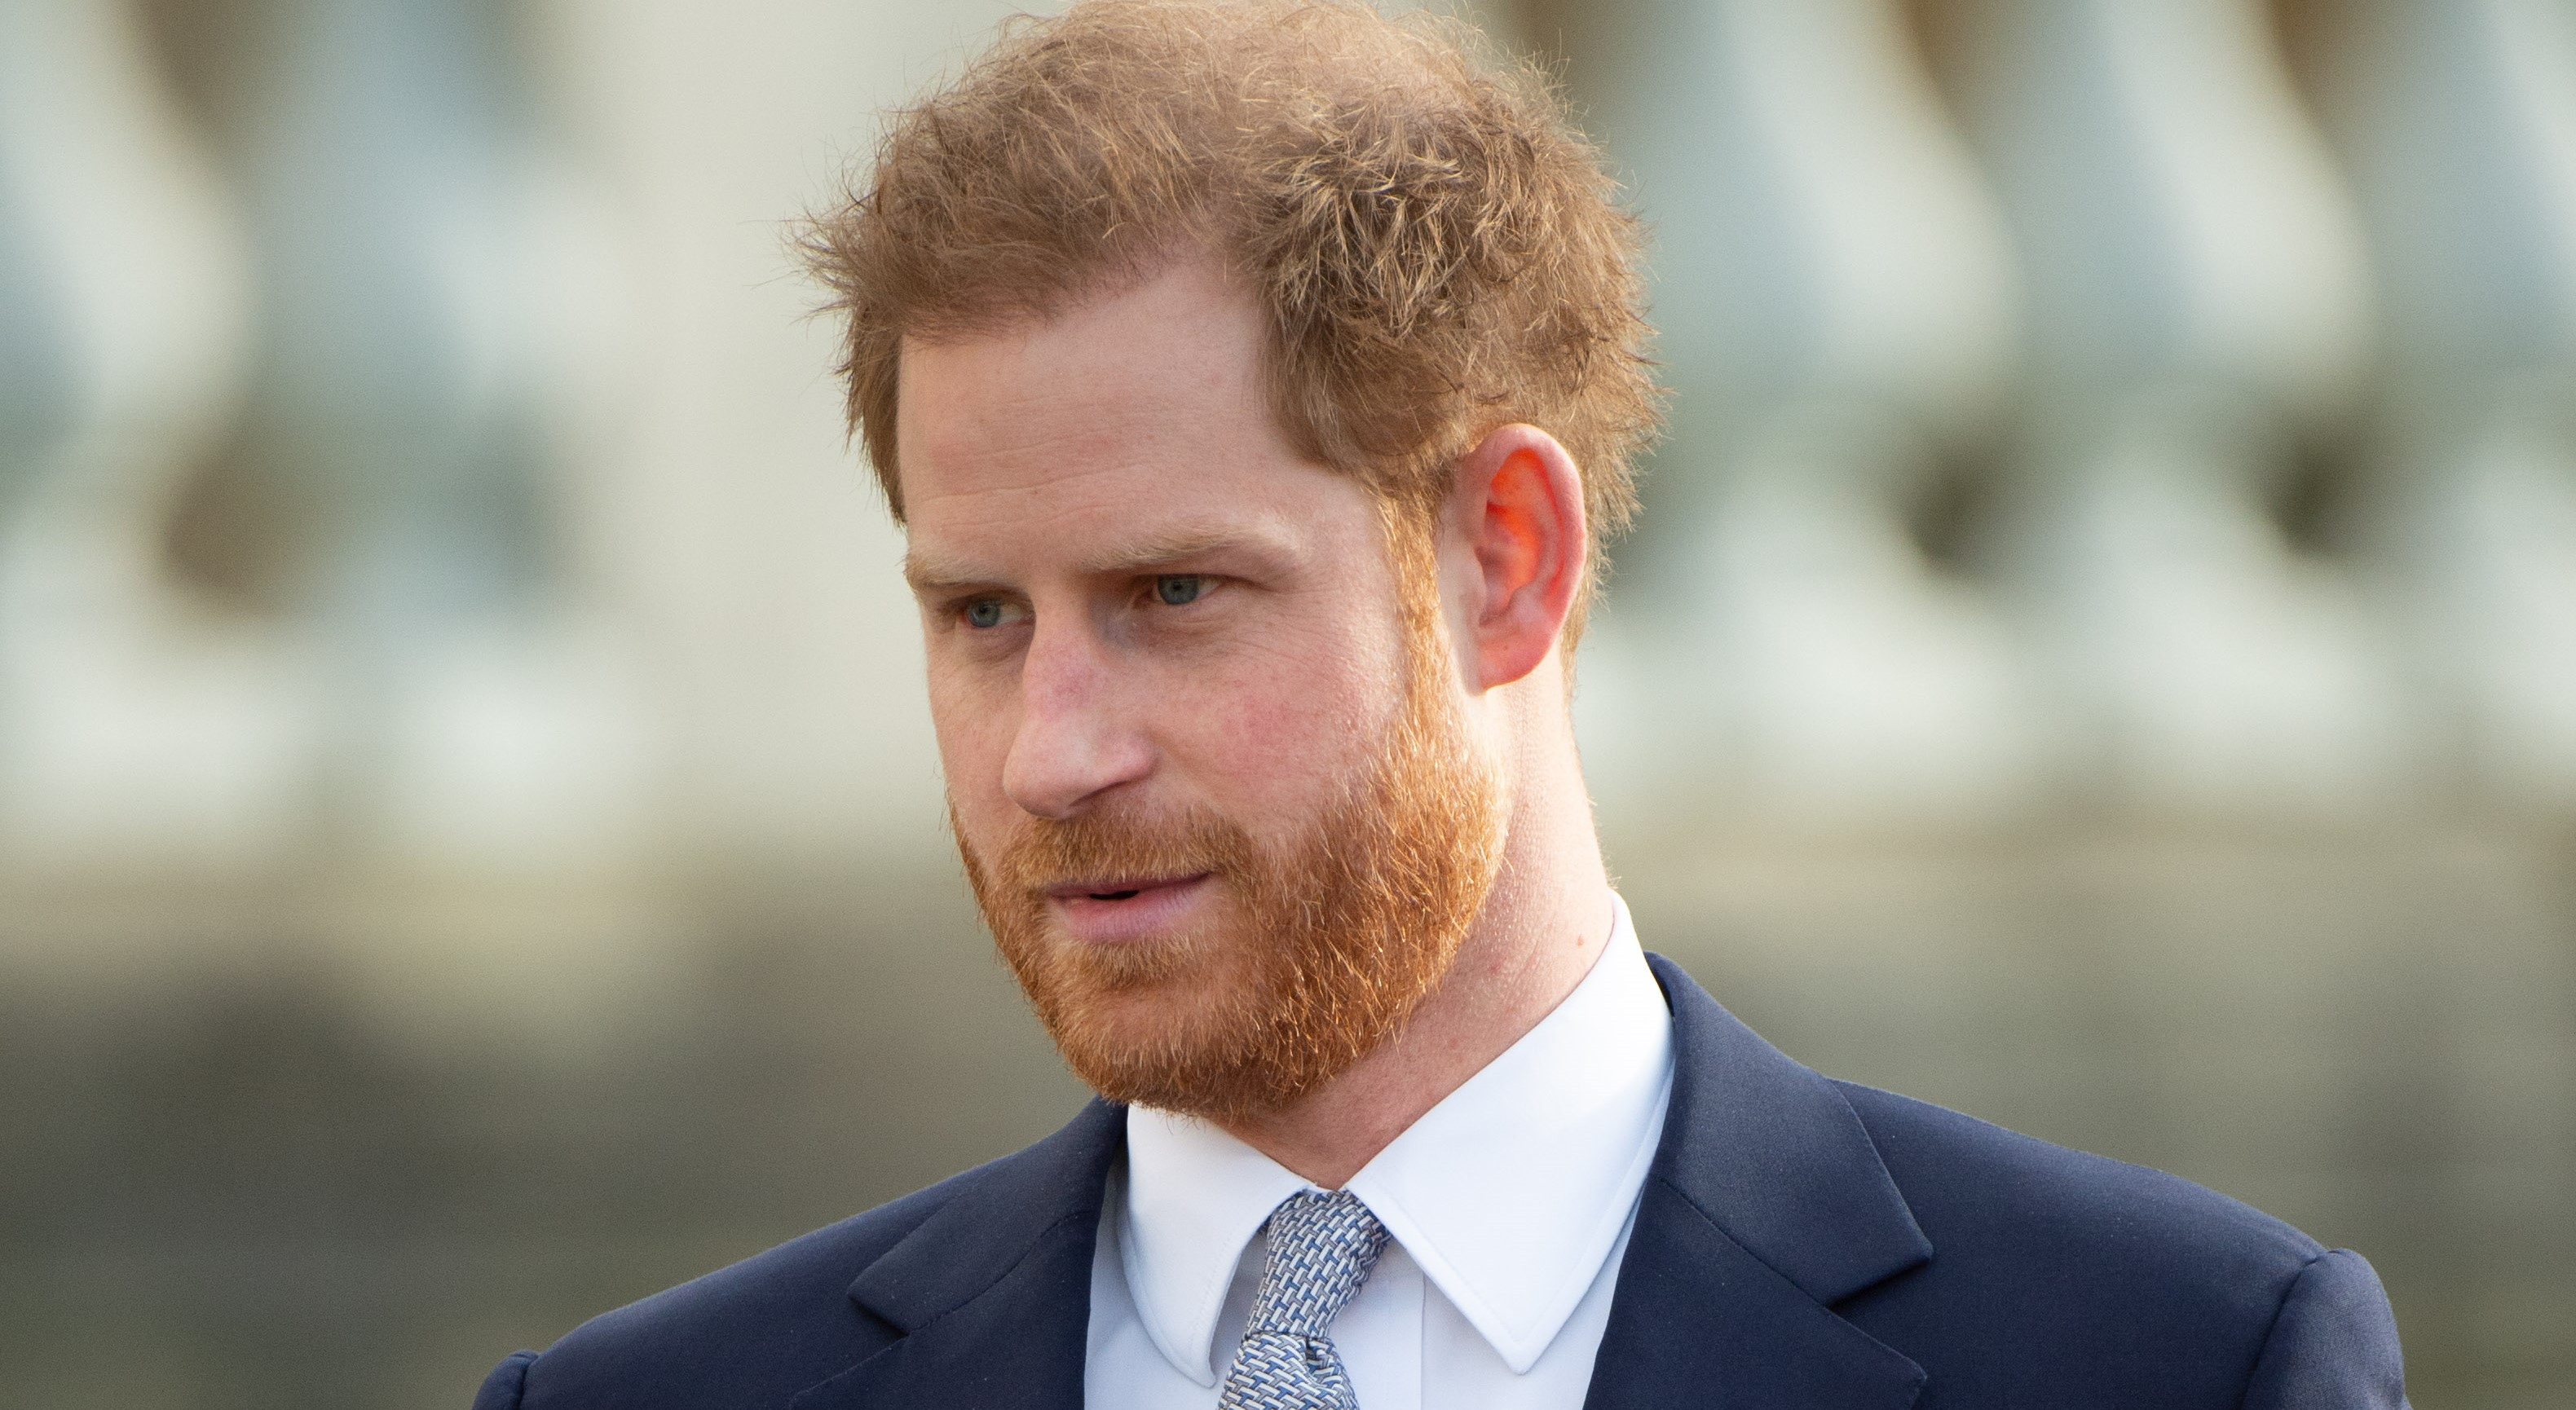 Prince Harry's close friend says he 'has suffered a lot'